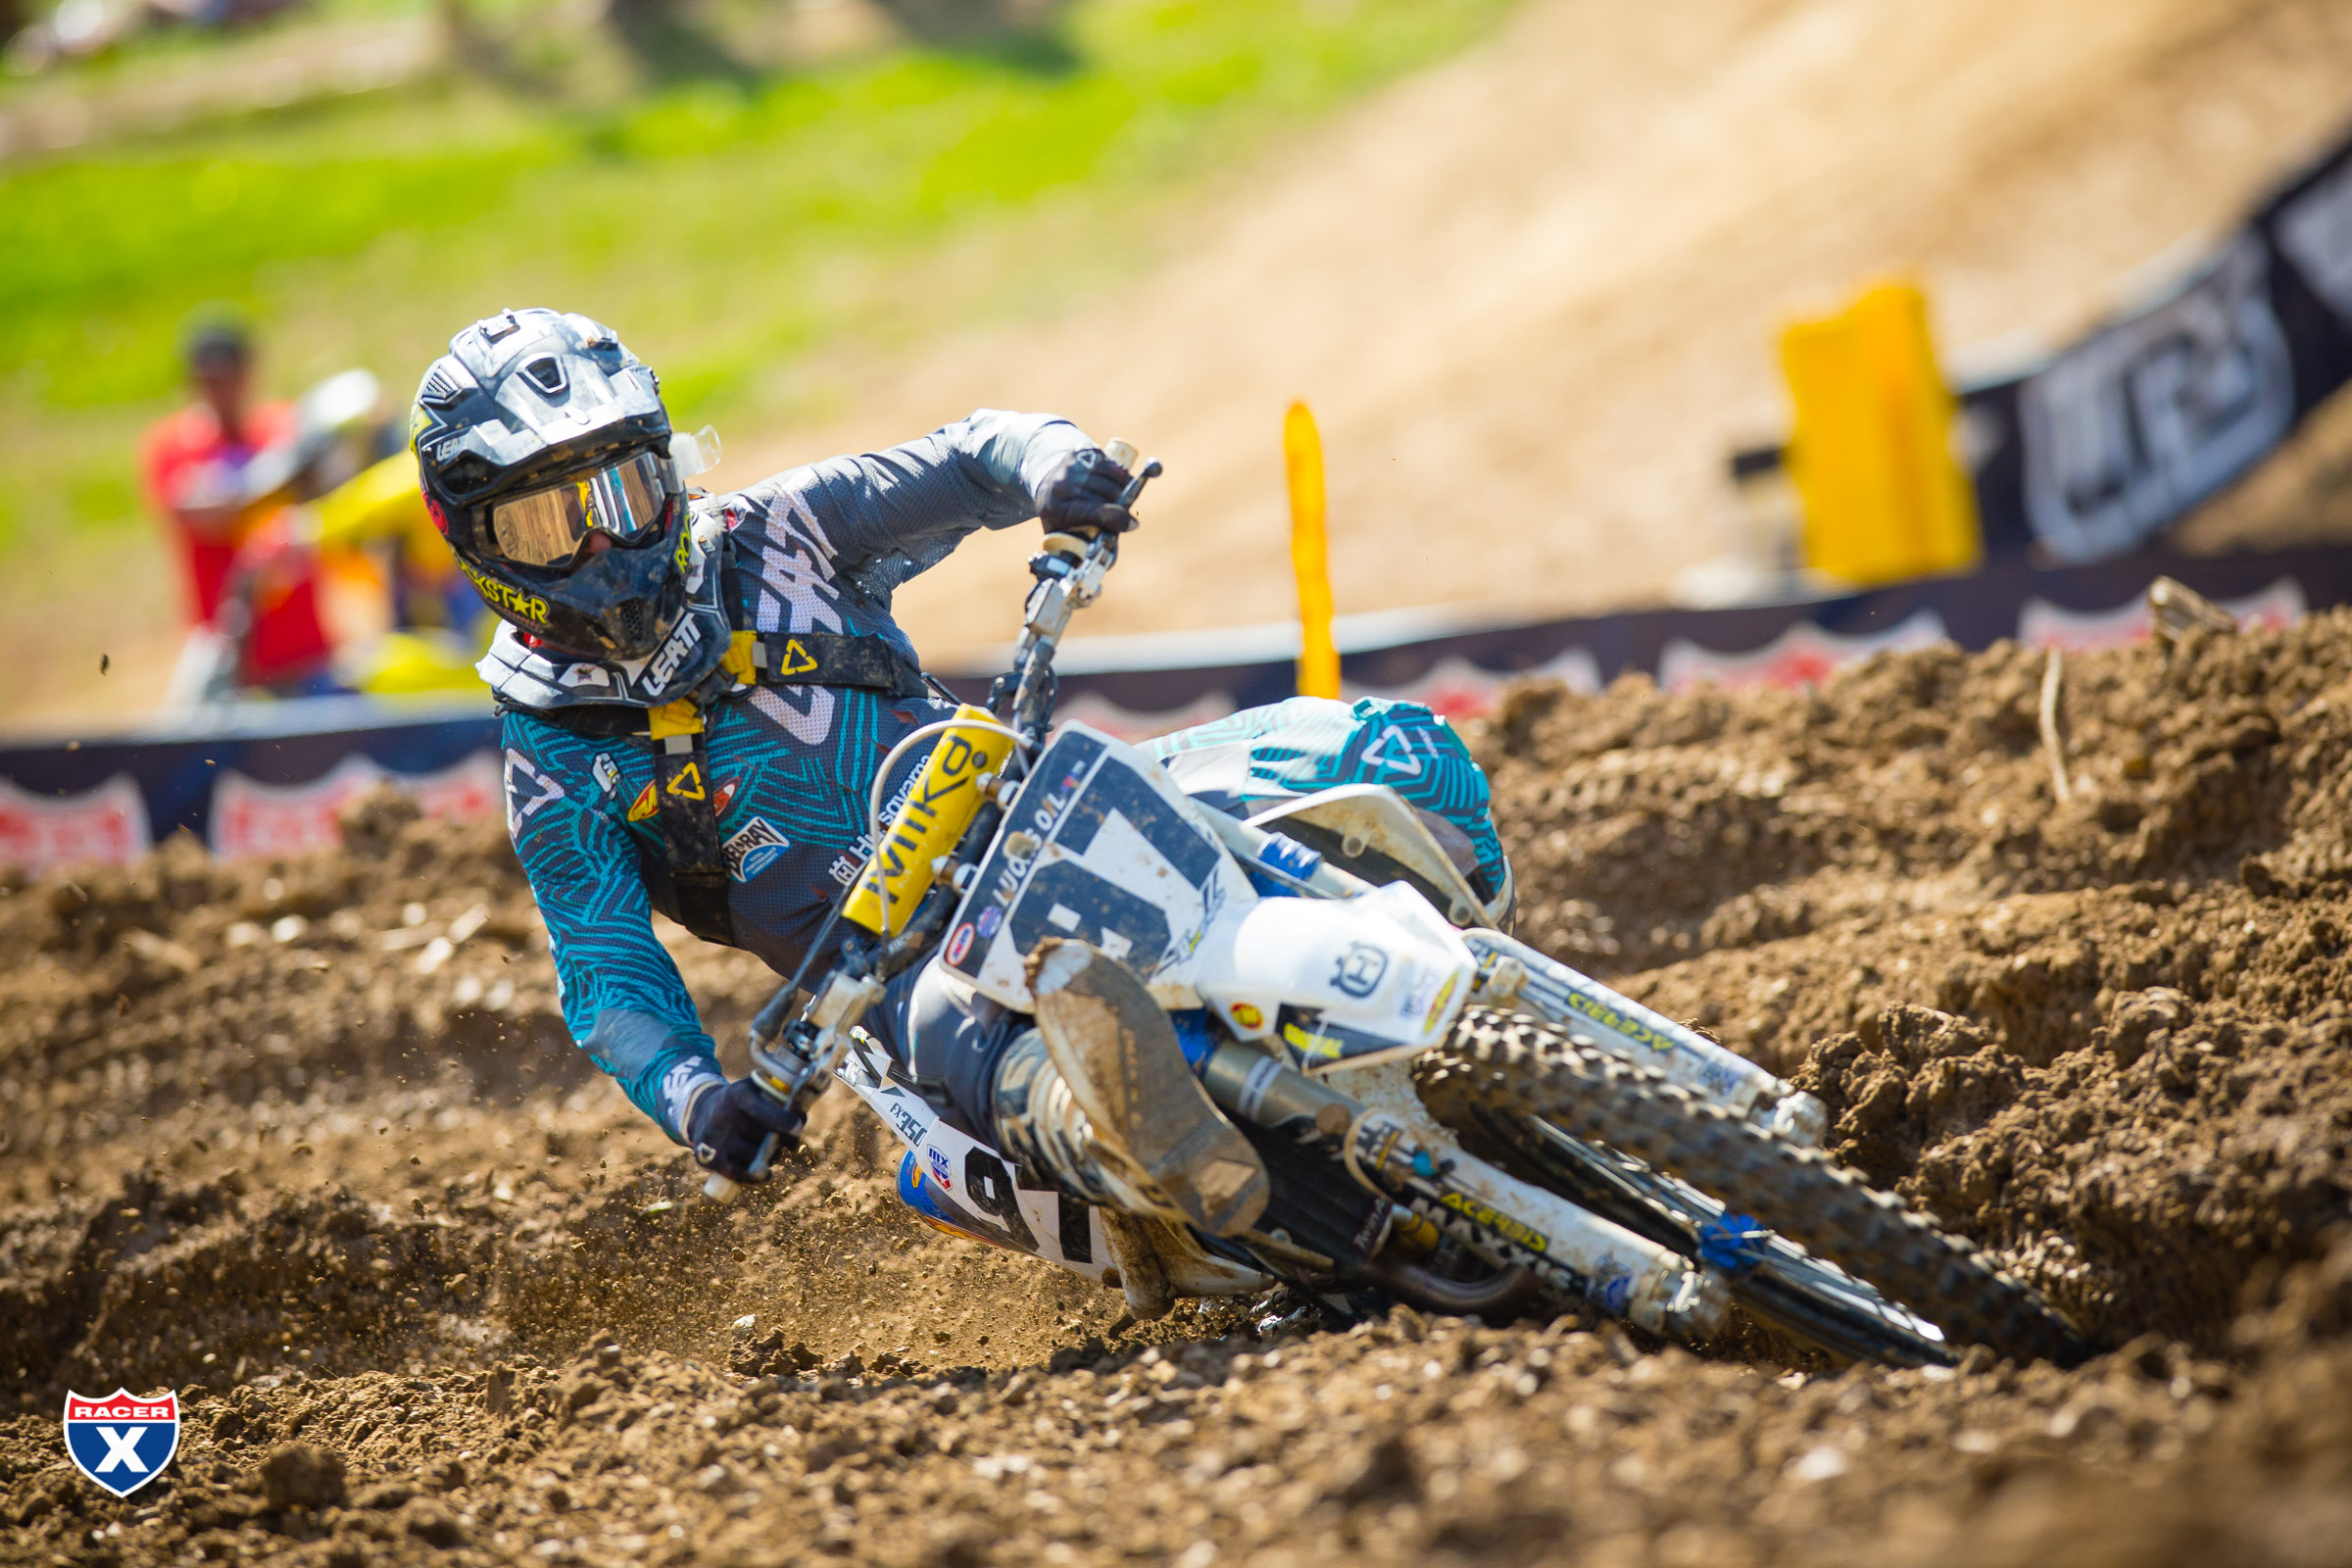 Sipes_MX17_HighPoint_JK_1258